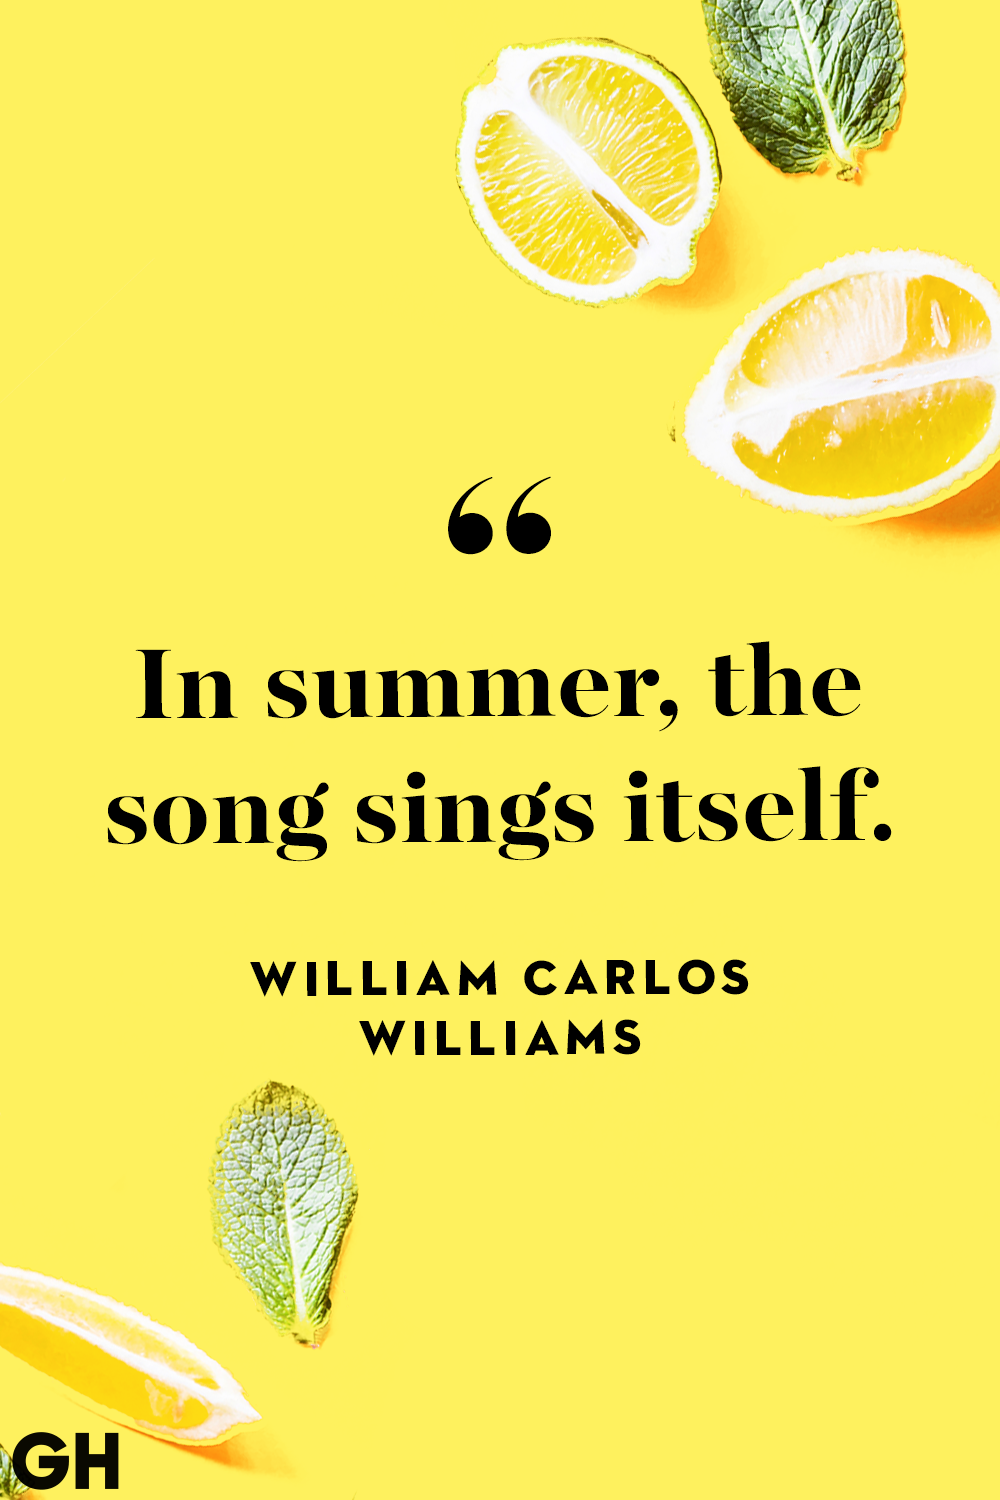 35 Best Summer Quotes - Lovely Sayings About Summertime